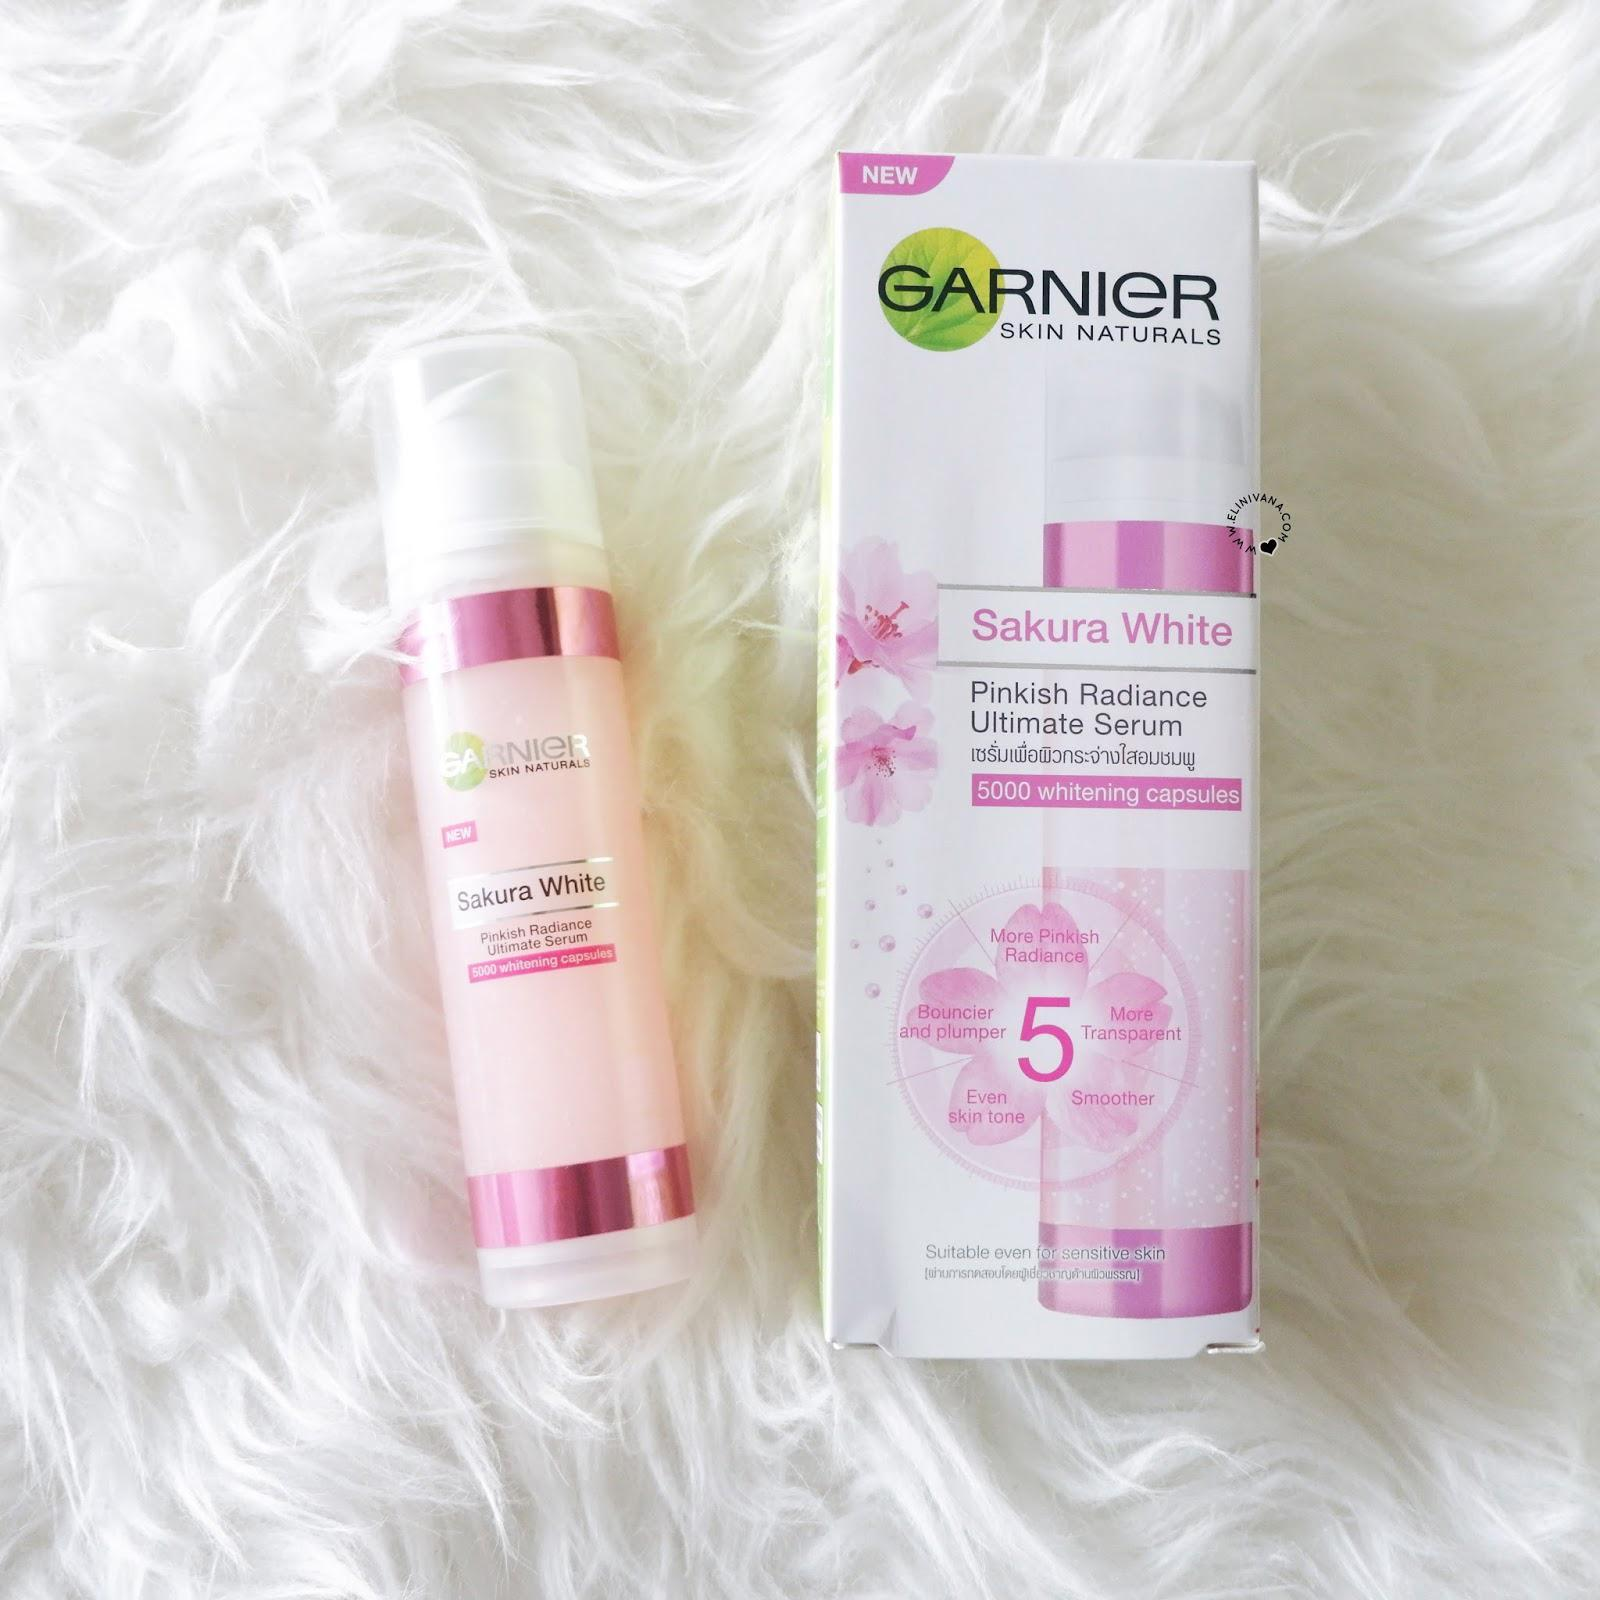 Buy Sell Cheapest Cream Glowing White Best Quality Product Deals Serum Skin Theraskin Pemutih Whitening Garnier Sakura Pinkish Radiance Ultimate Netto 50ml Besar Bpom Original 100 Asli Pencerah Wajah